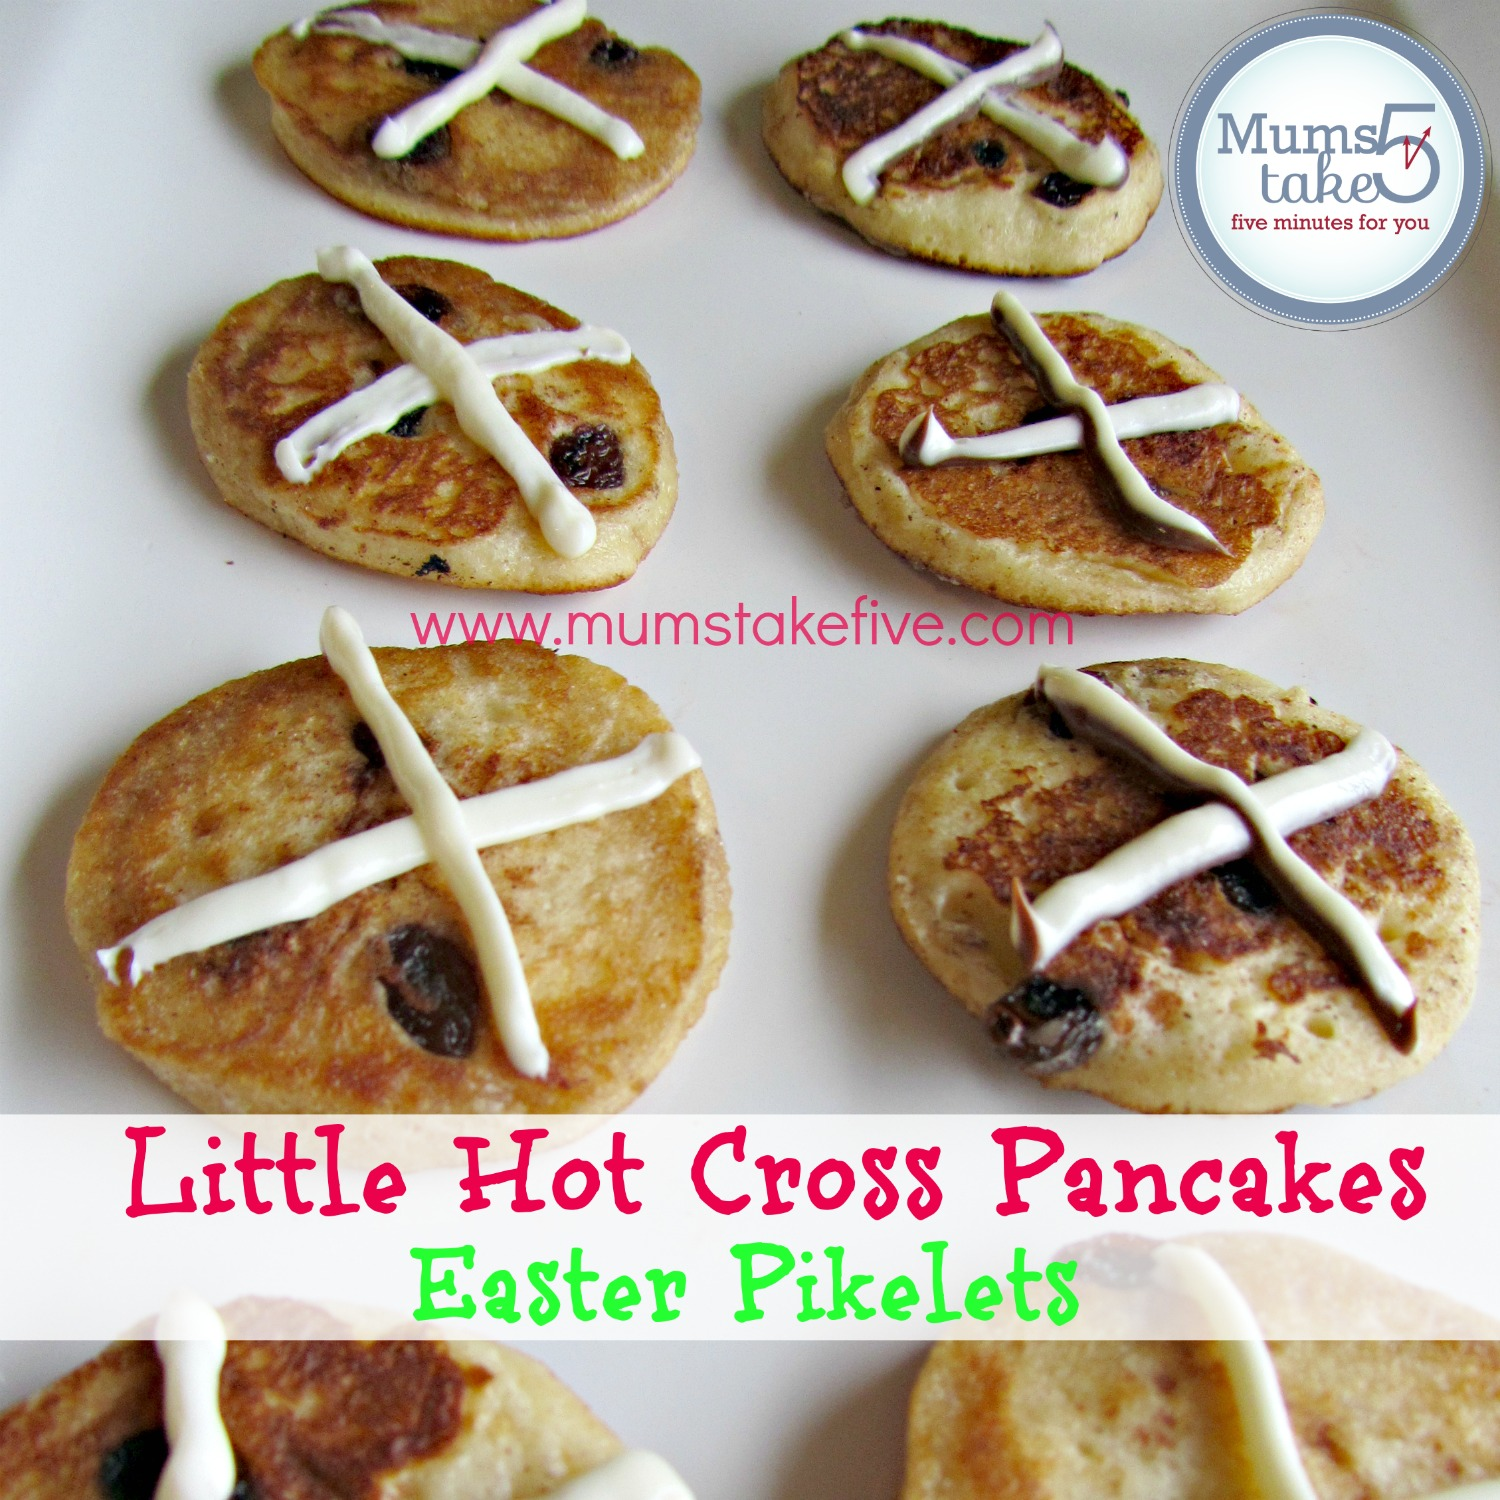 easter pikelets - little hot cross pancakes